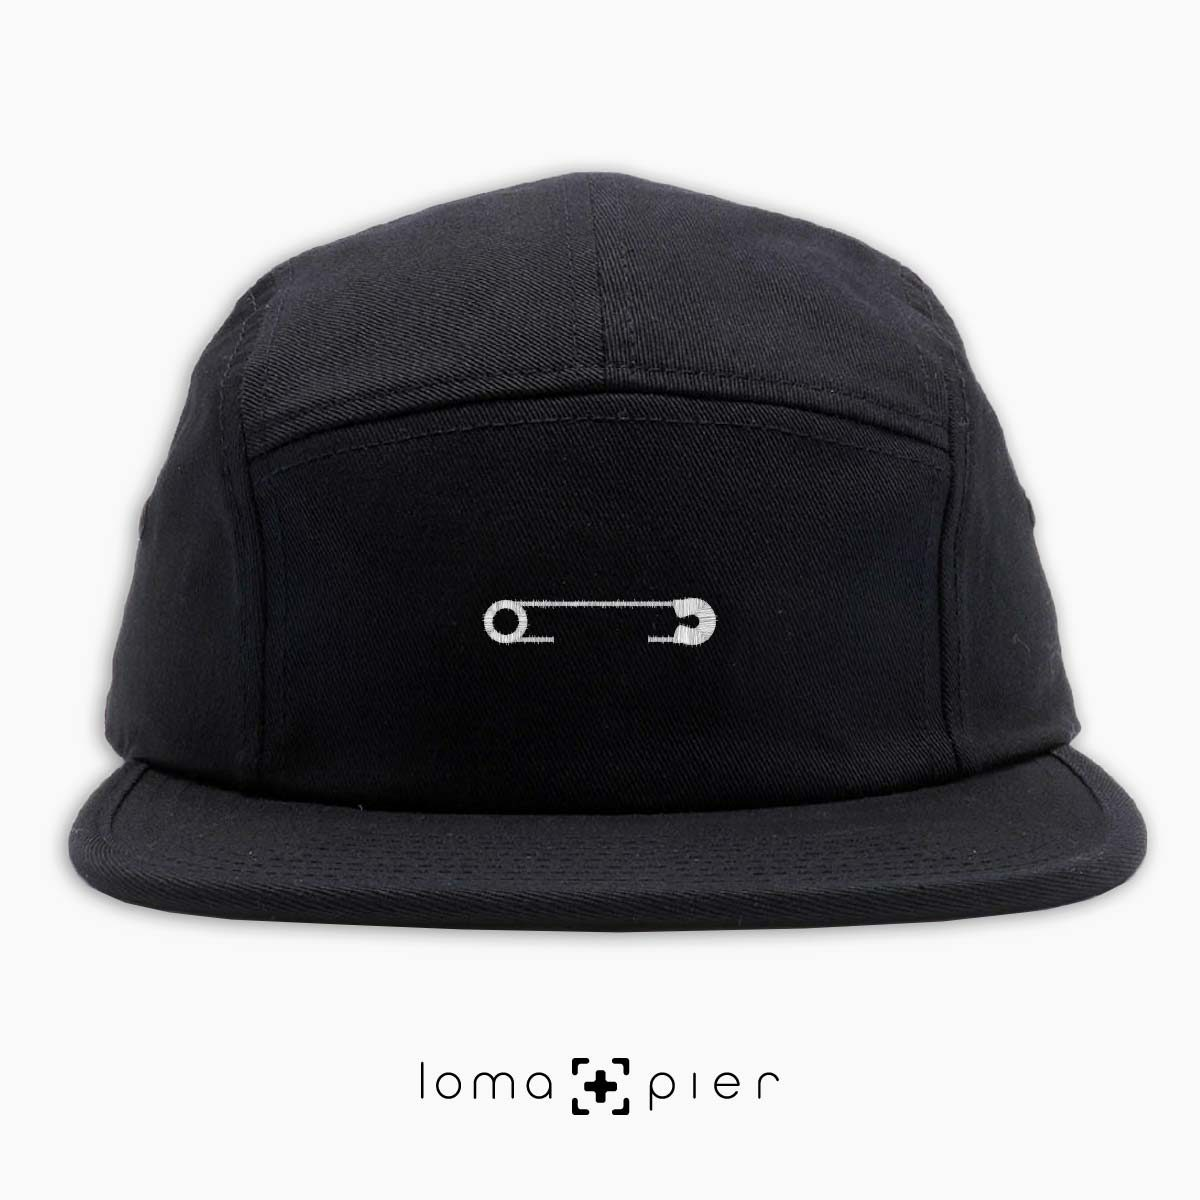 SAFETY PIN icon embroidered on a black cotton 5-panel hat with white thread by loma+pier hat store